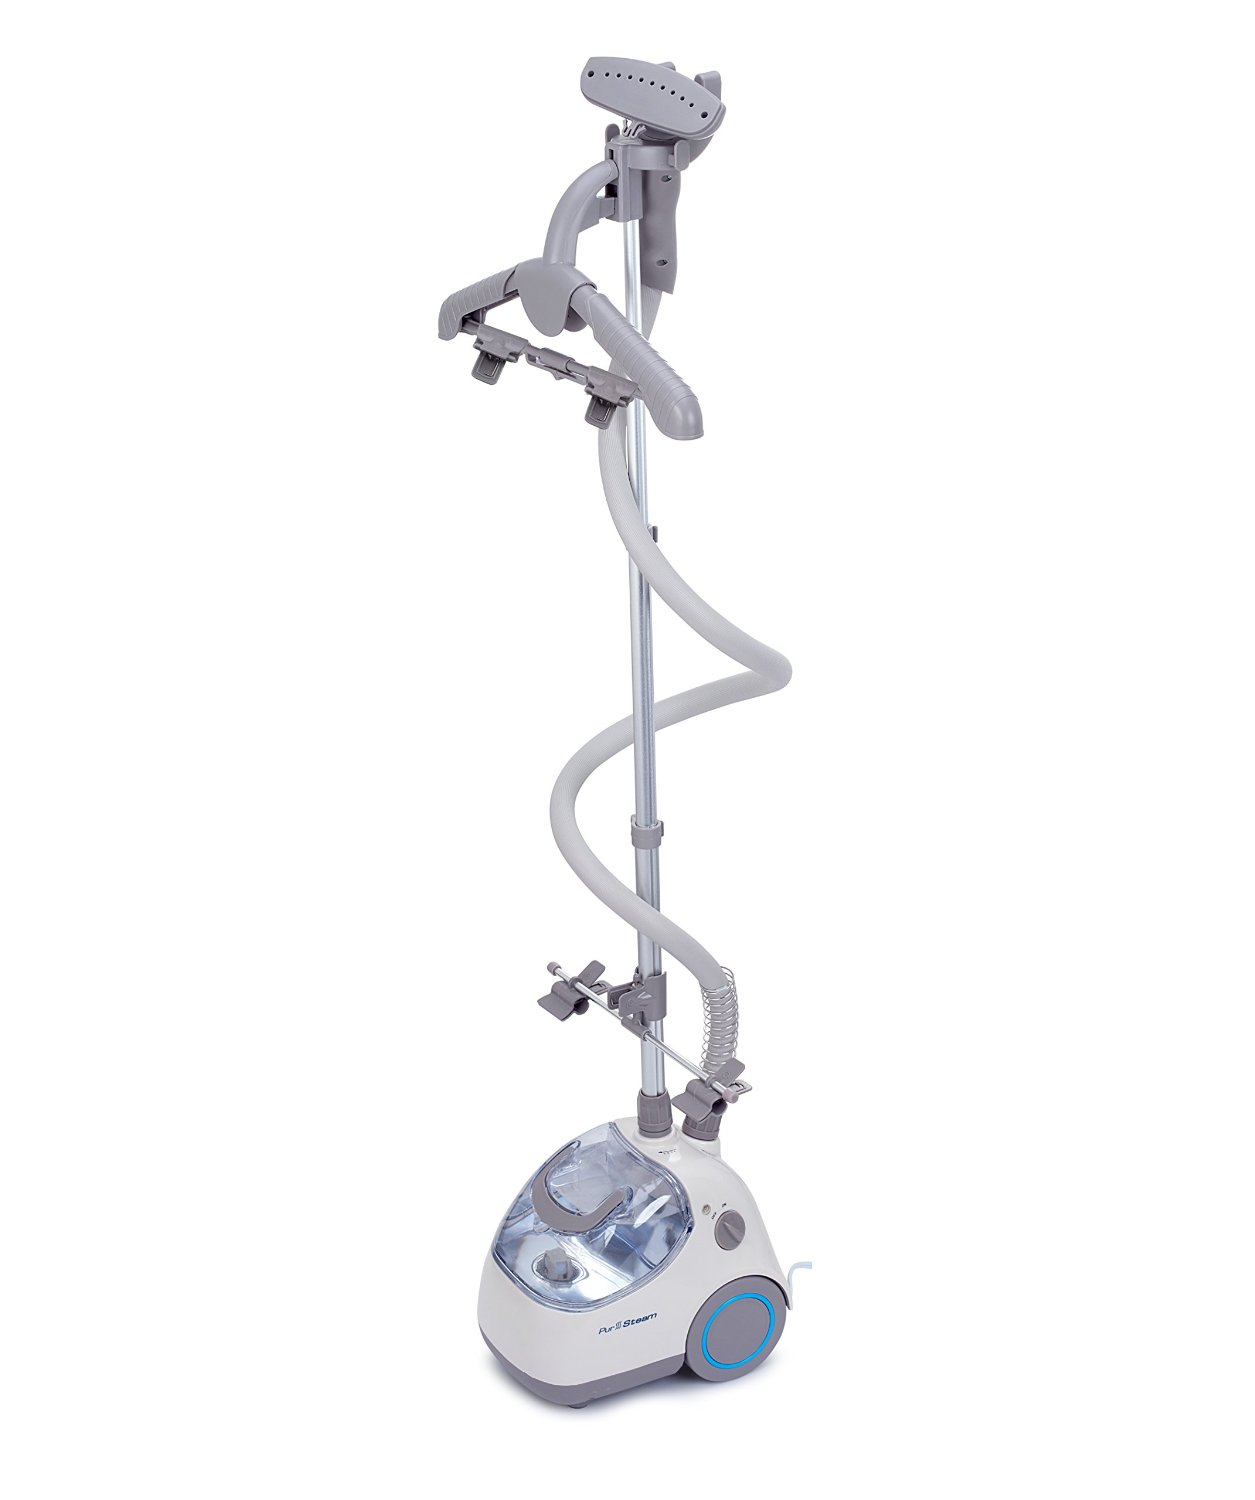 PurSteam Garment Steamer